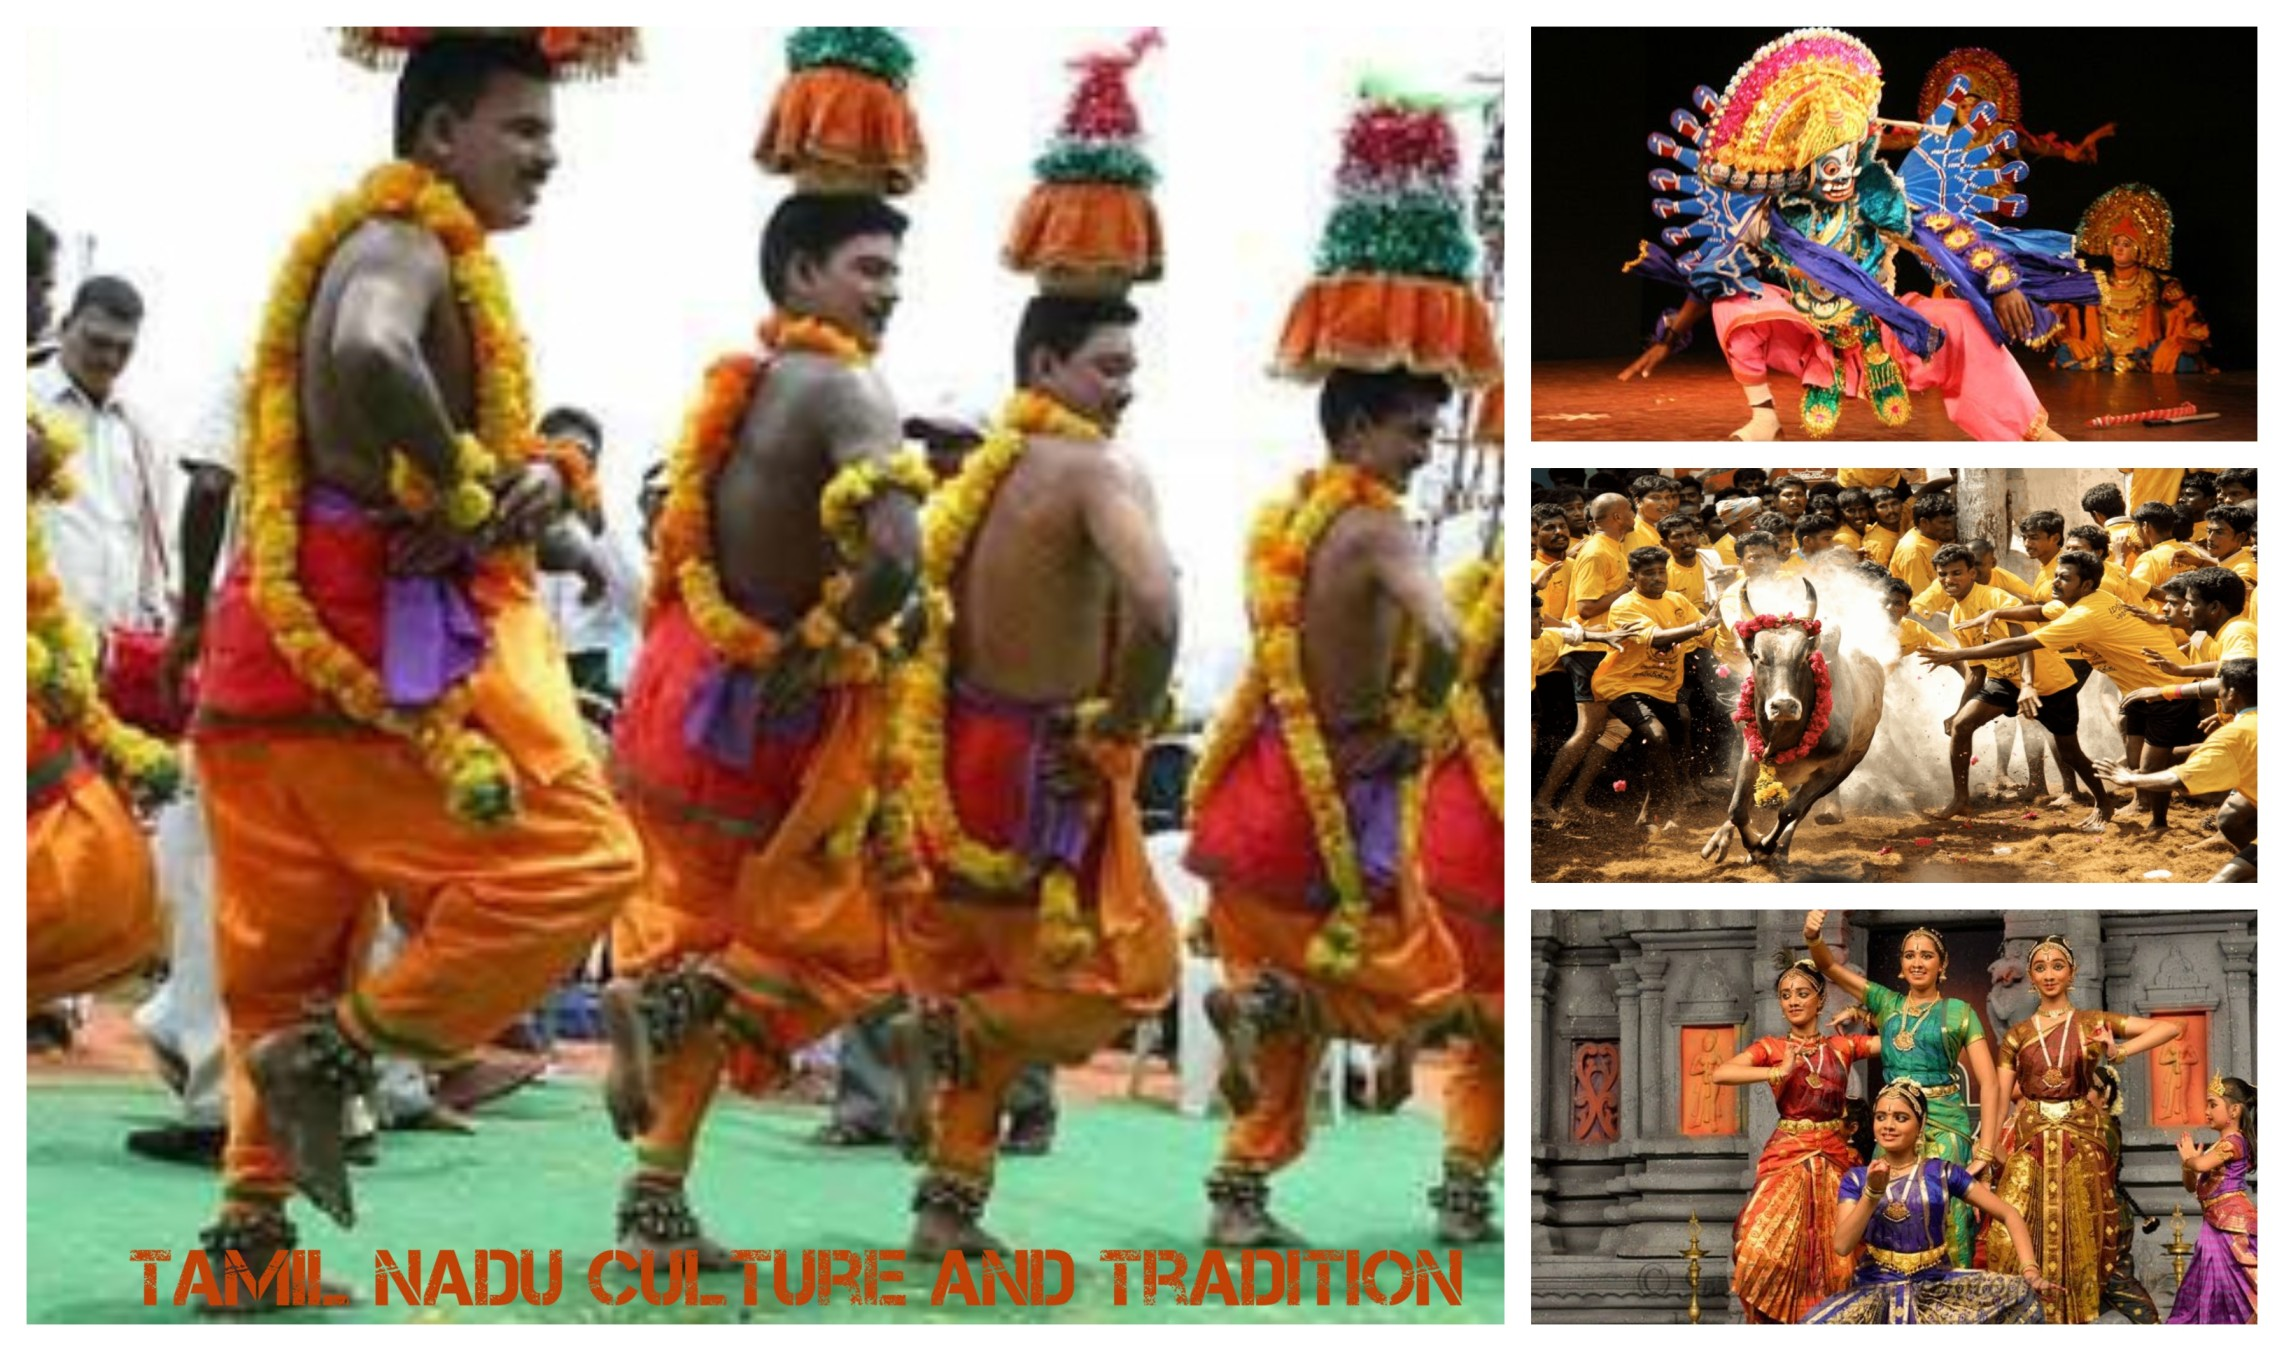 The Supremely Rich Tamil Nadu Culture and Tradition